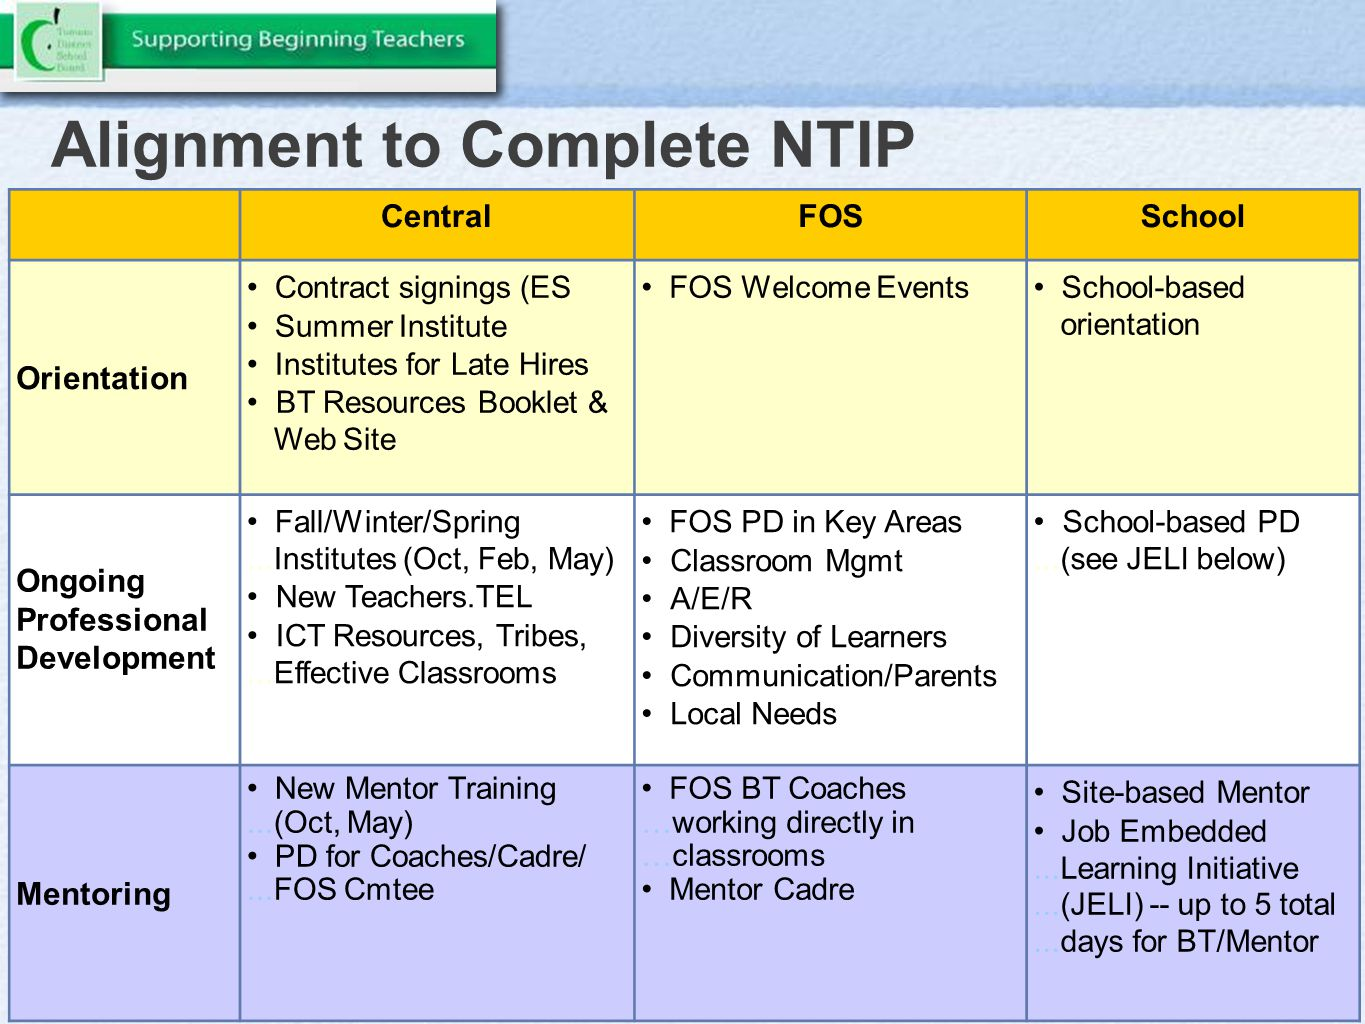 Alignment to Complete NTIP CentralFOSSchool Orientation Contract signings (ES Summer Institute Institutes for Late Hires BT Resources Booklet &...Web Site FOS Welcome Events School-based...orientation Ongoing Professional Development Fall/Winter/Spring...Institutes (Oct, Feb, May) New Teachers.TEL ICT Resources, Tribes,...Effective Classrooms FOS PD in Key Areas Classroom Mgmt A/E/R Diversity of Learners Communication/Parents Local Needs School-based PD...(see JELI below) Mentoring New Mentor Training...(Oct, May) PD for Coaches/Cadre/...FOS Cmtee FOS BT Coaches …working directly in …classrooms Mentor Cadre Site-based Mentor Job Embedded...Learning Initiative...(JELI) -- up to 5 total...days for BT/Mentor